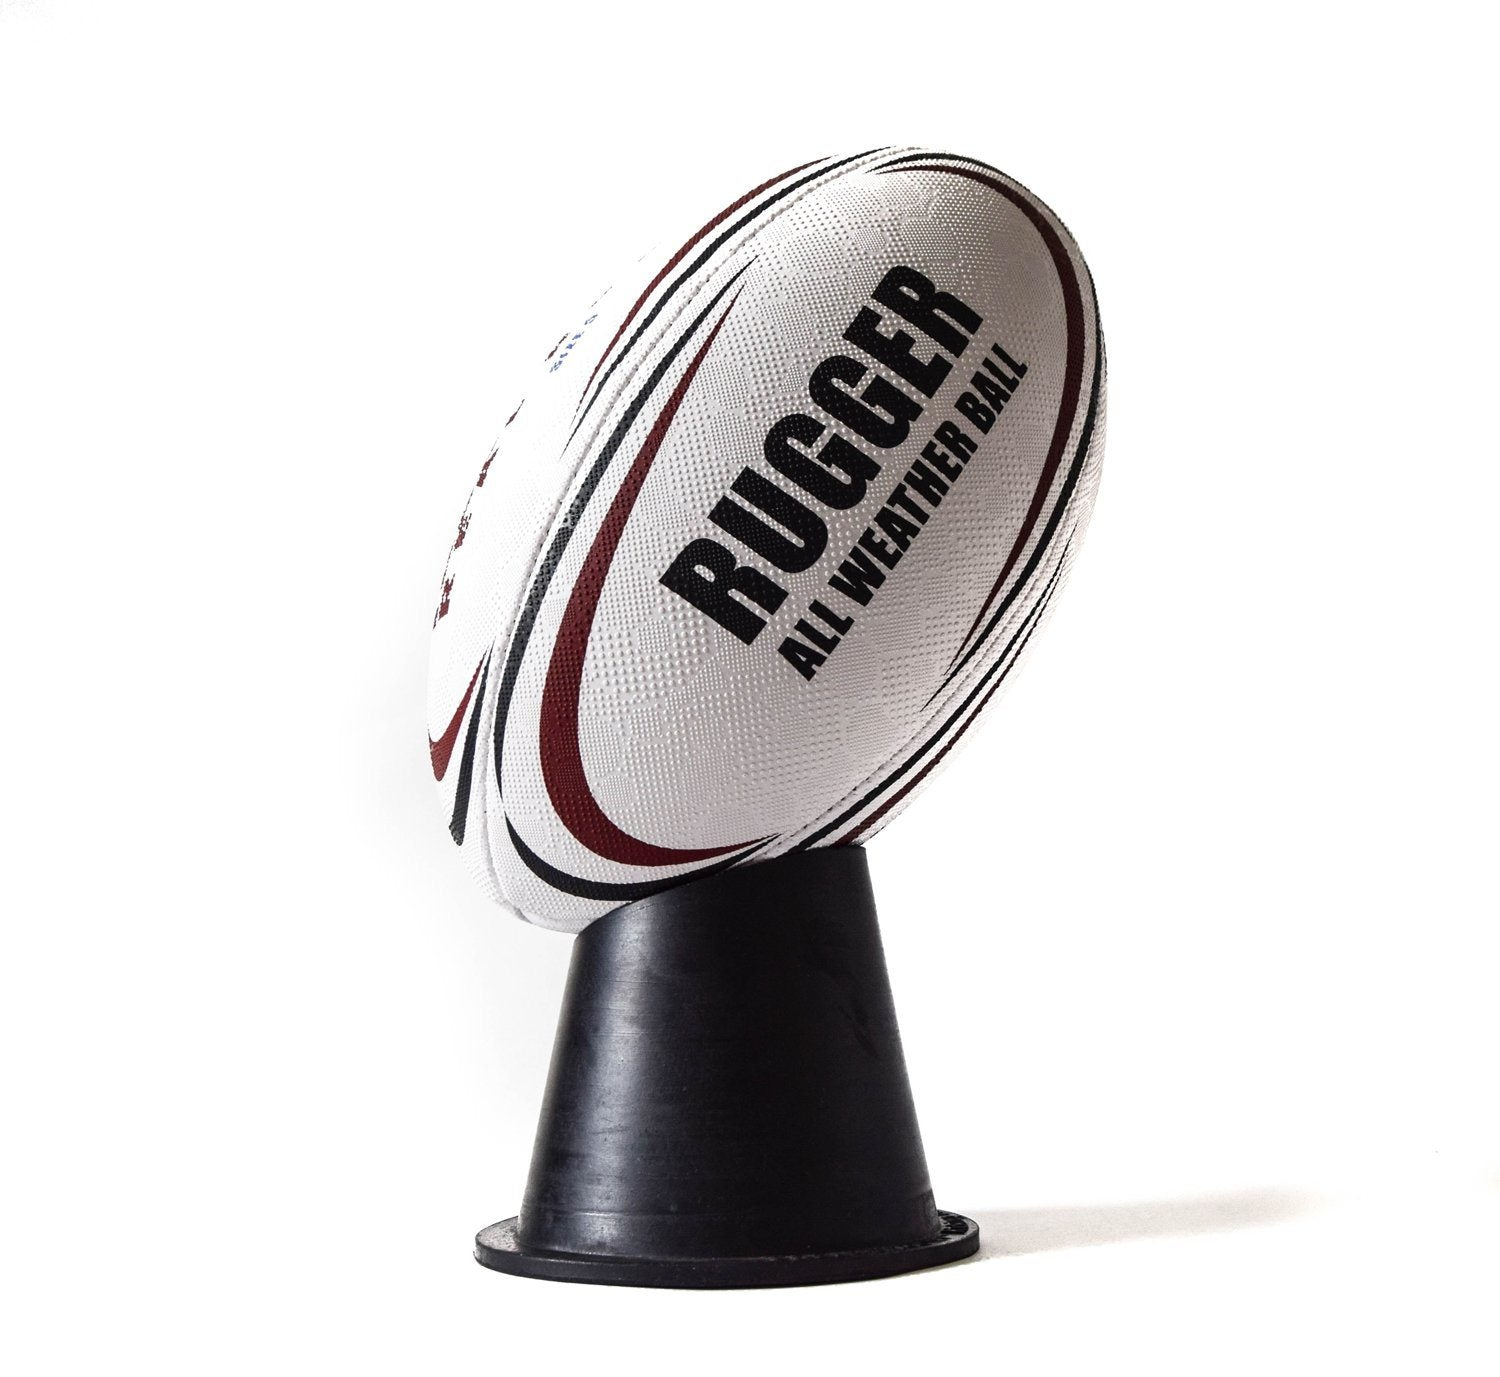 Accessories - Sharp Shooter Rugby Kicking Tee